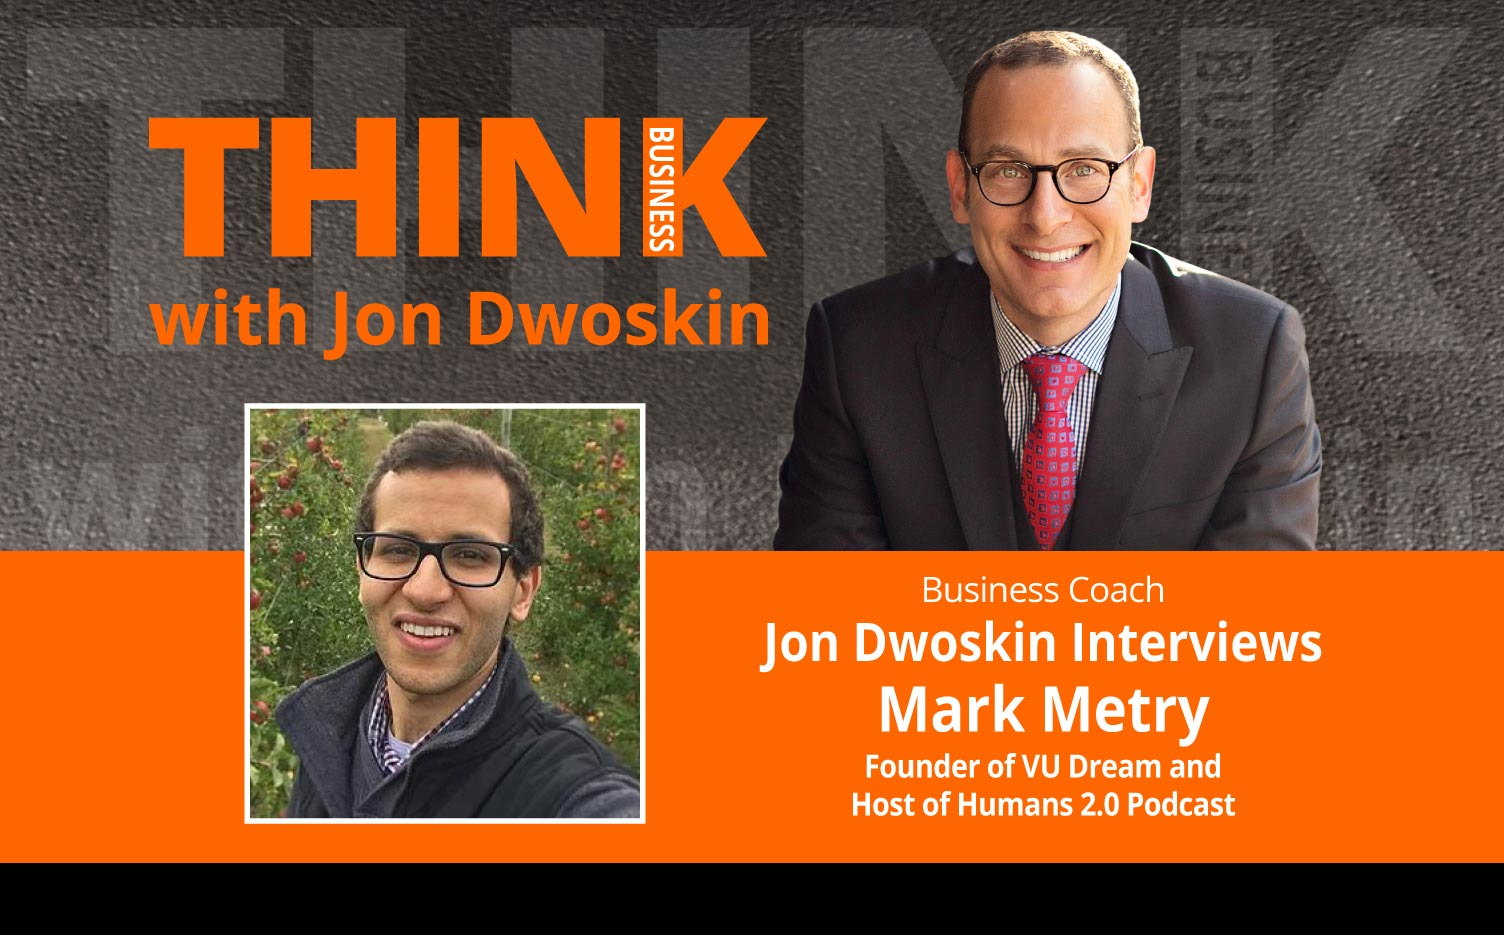 THINK Business Podcast: Jon Dwoskin Interviews Mark Metry, Founder of VU Dream and Host of Humans 2.0 Podcast